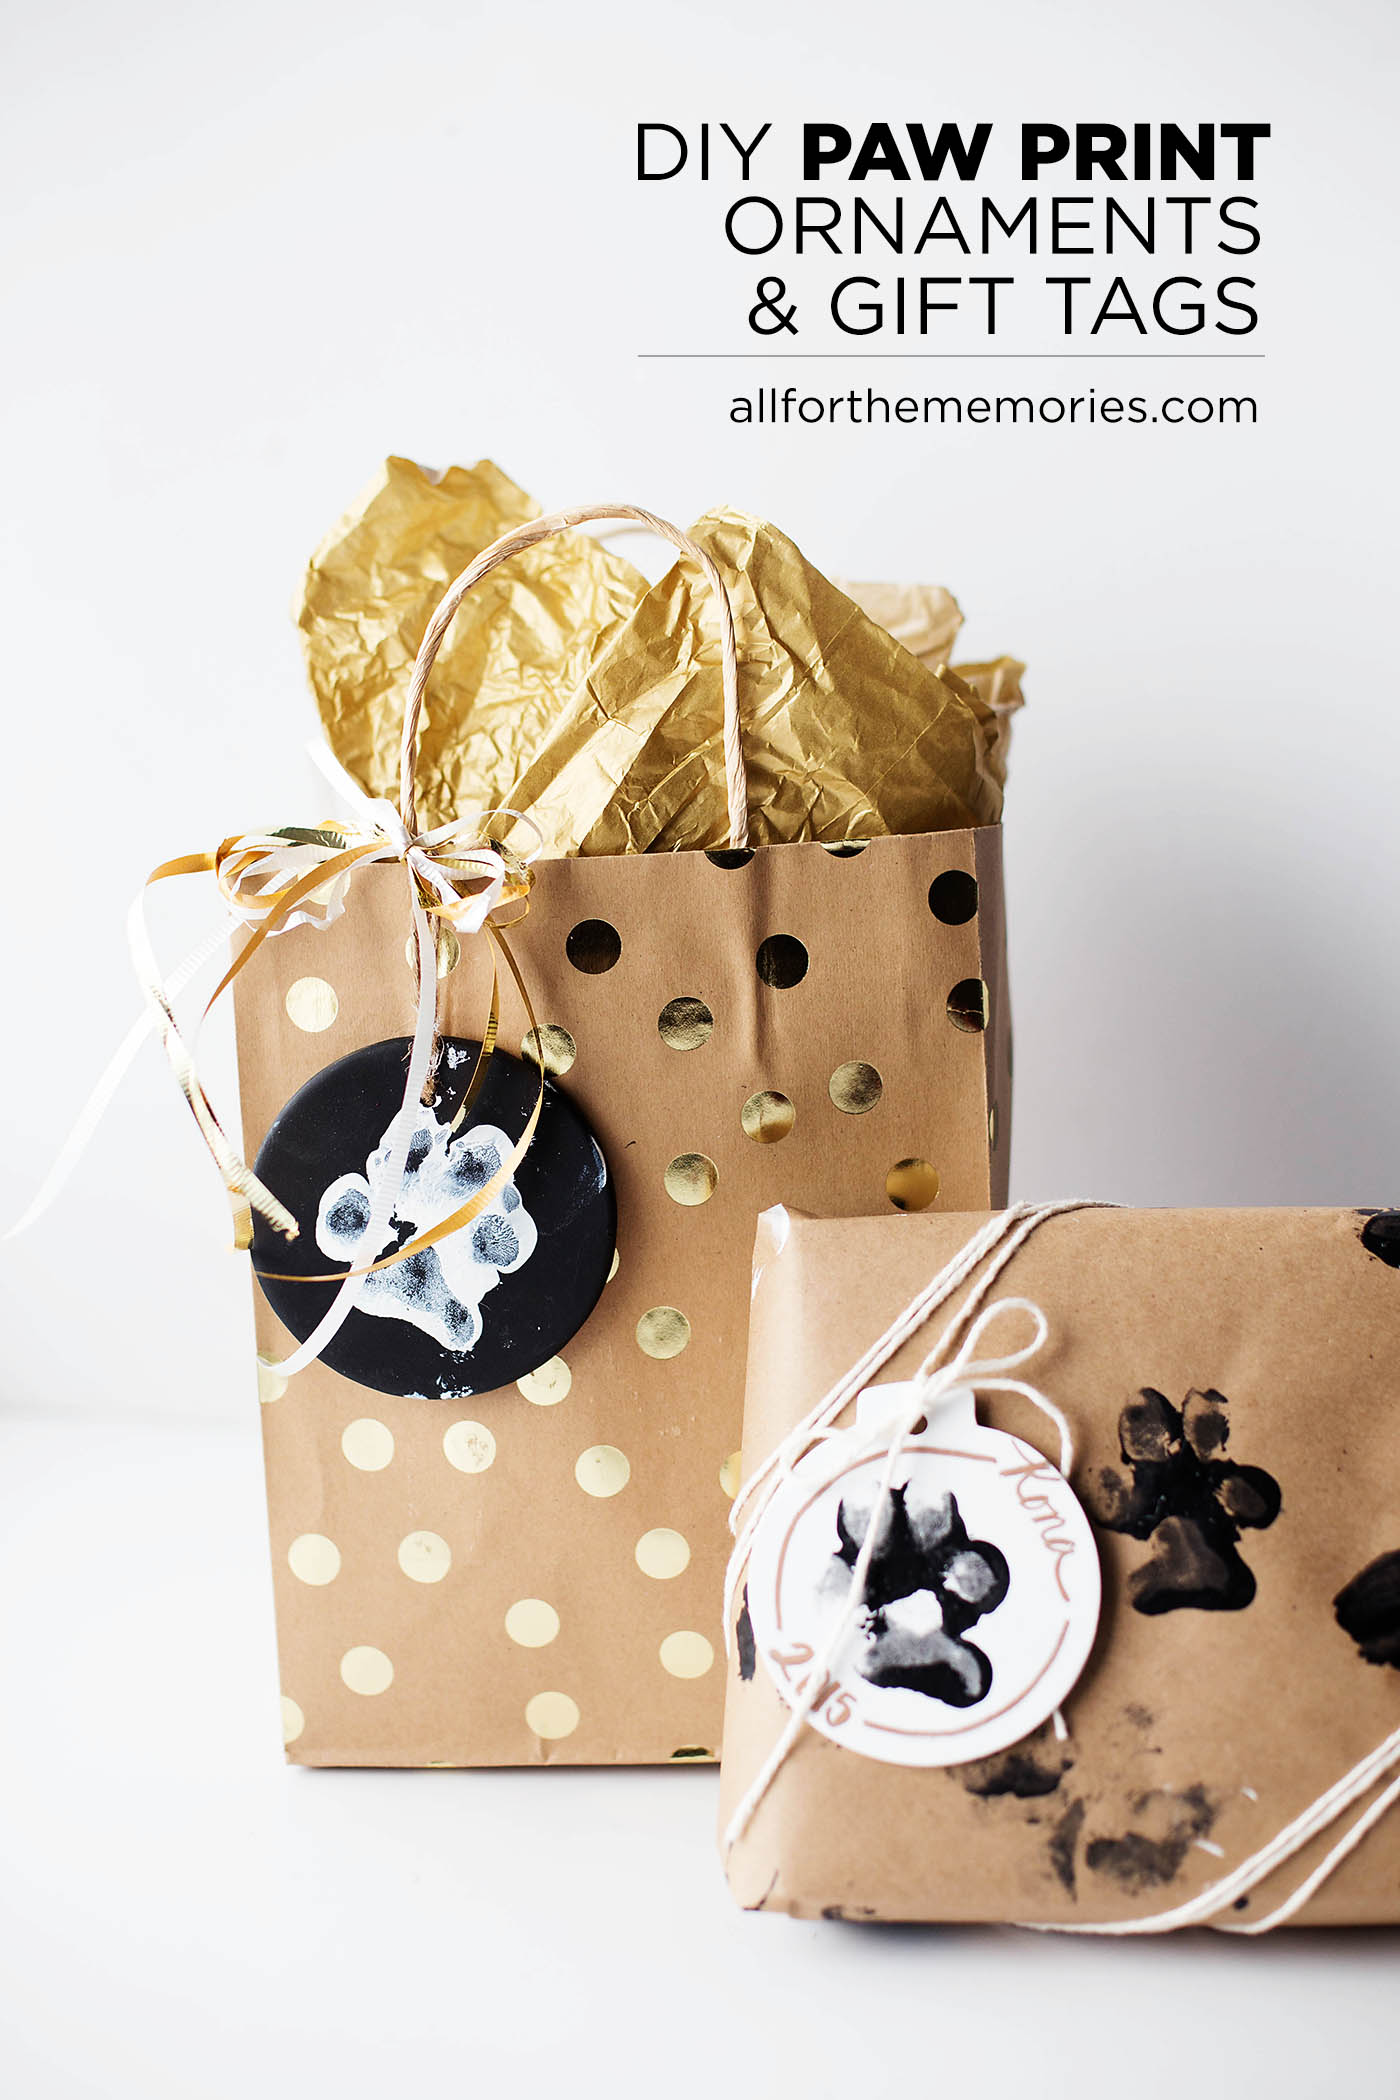 DIY dog paw print ornaments & gift tags